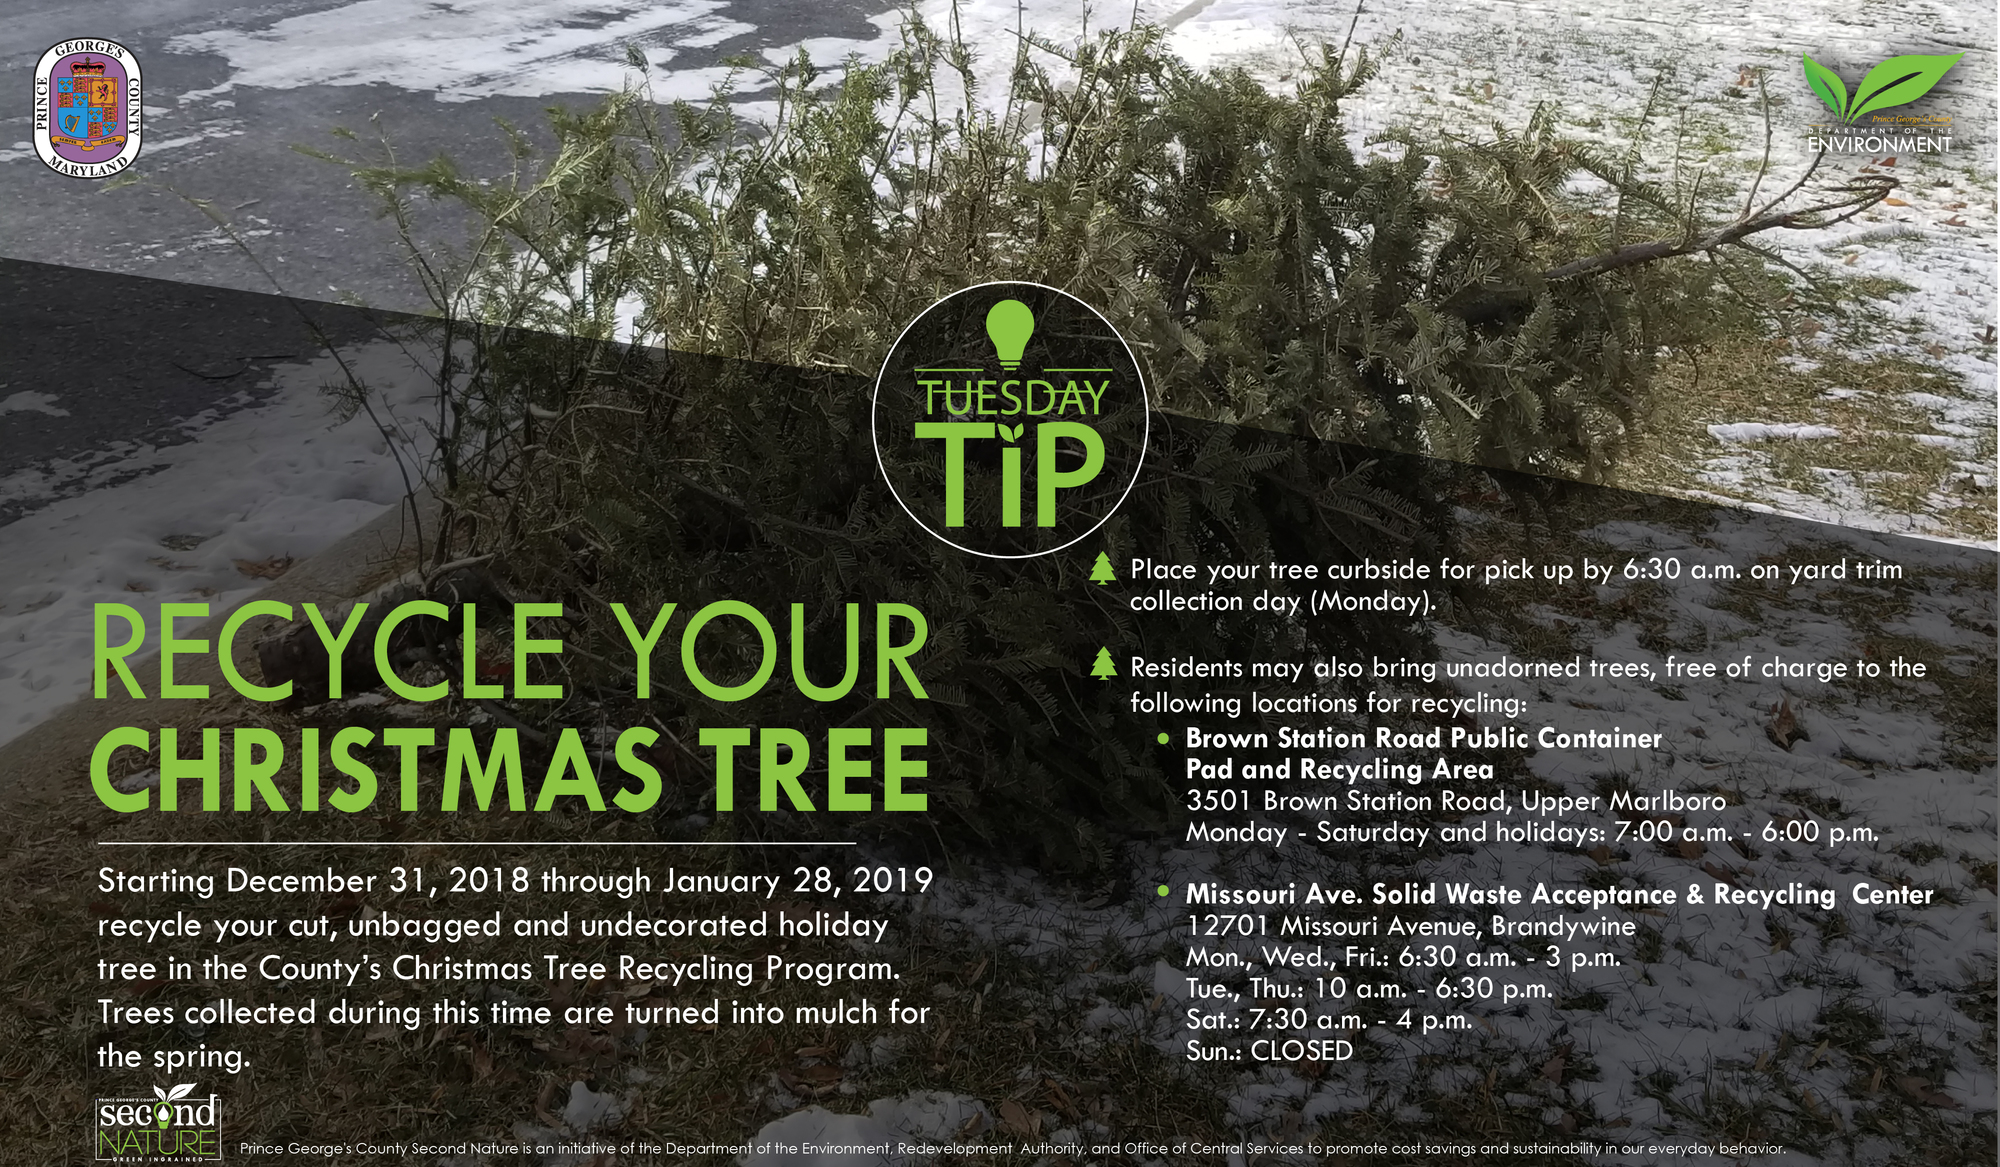 Tues Tip 12.25.18 xmas tree recycle